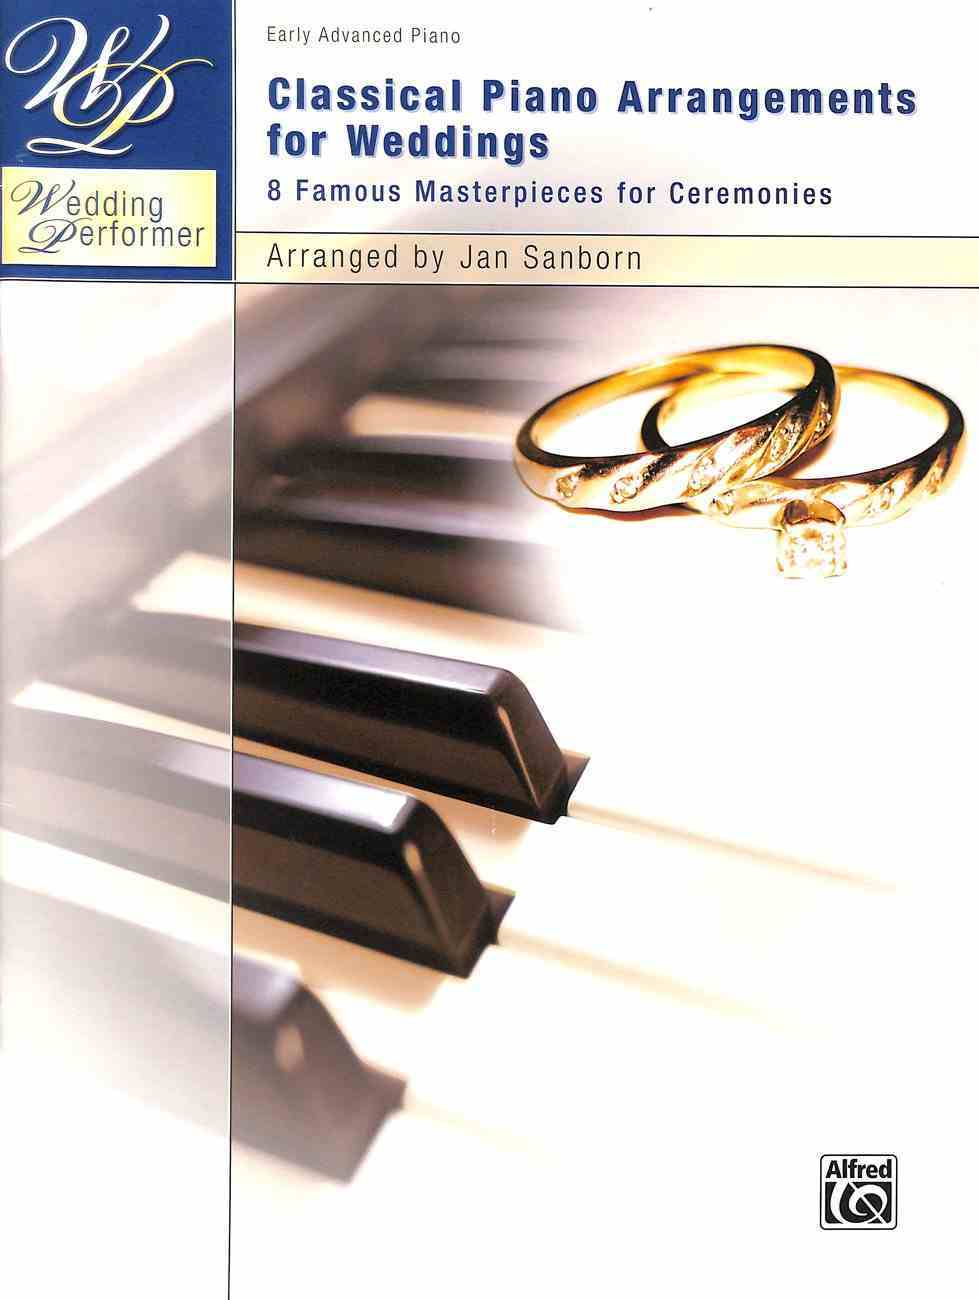 Wedding Performer: Classical Piano Arrangements For Weddings:8 Famous Masterpieces For Ceremonies (Early Advanced Piano) (Music Book) Paperback